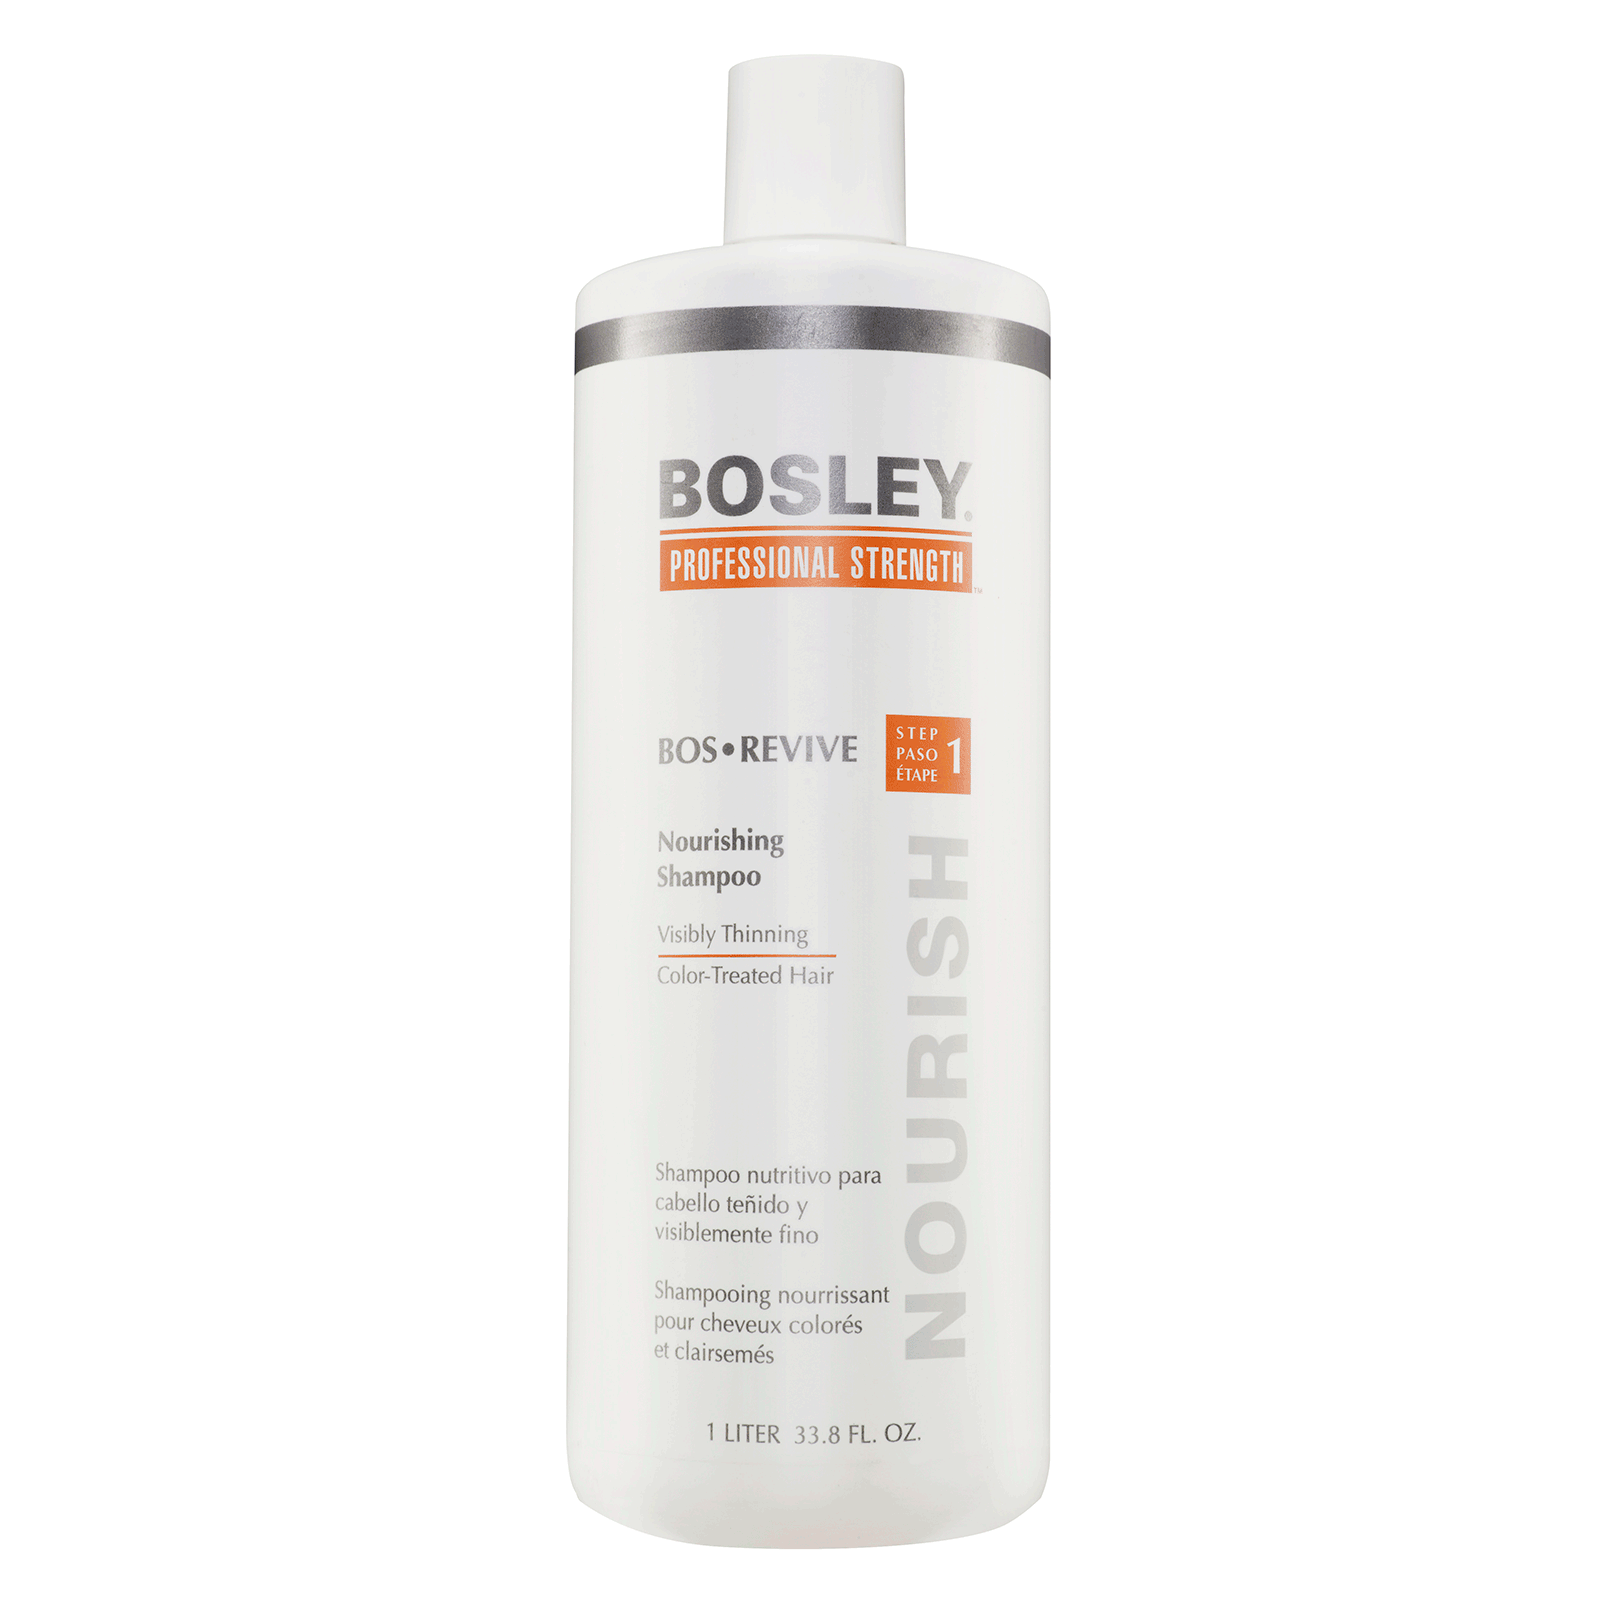 BosRevive Nourishing Shampoo for Color-Treated Hair